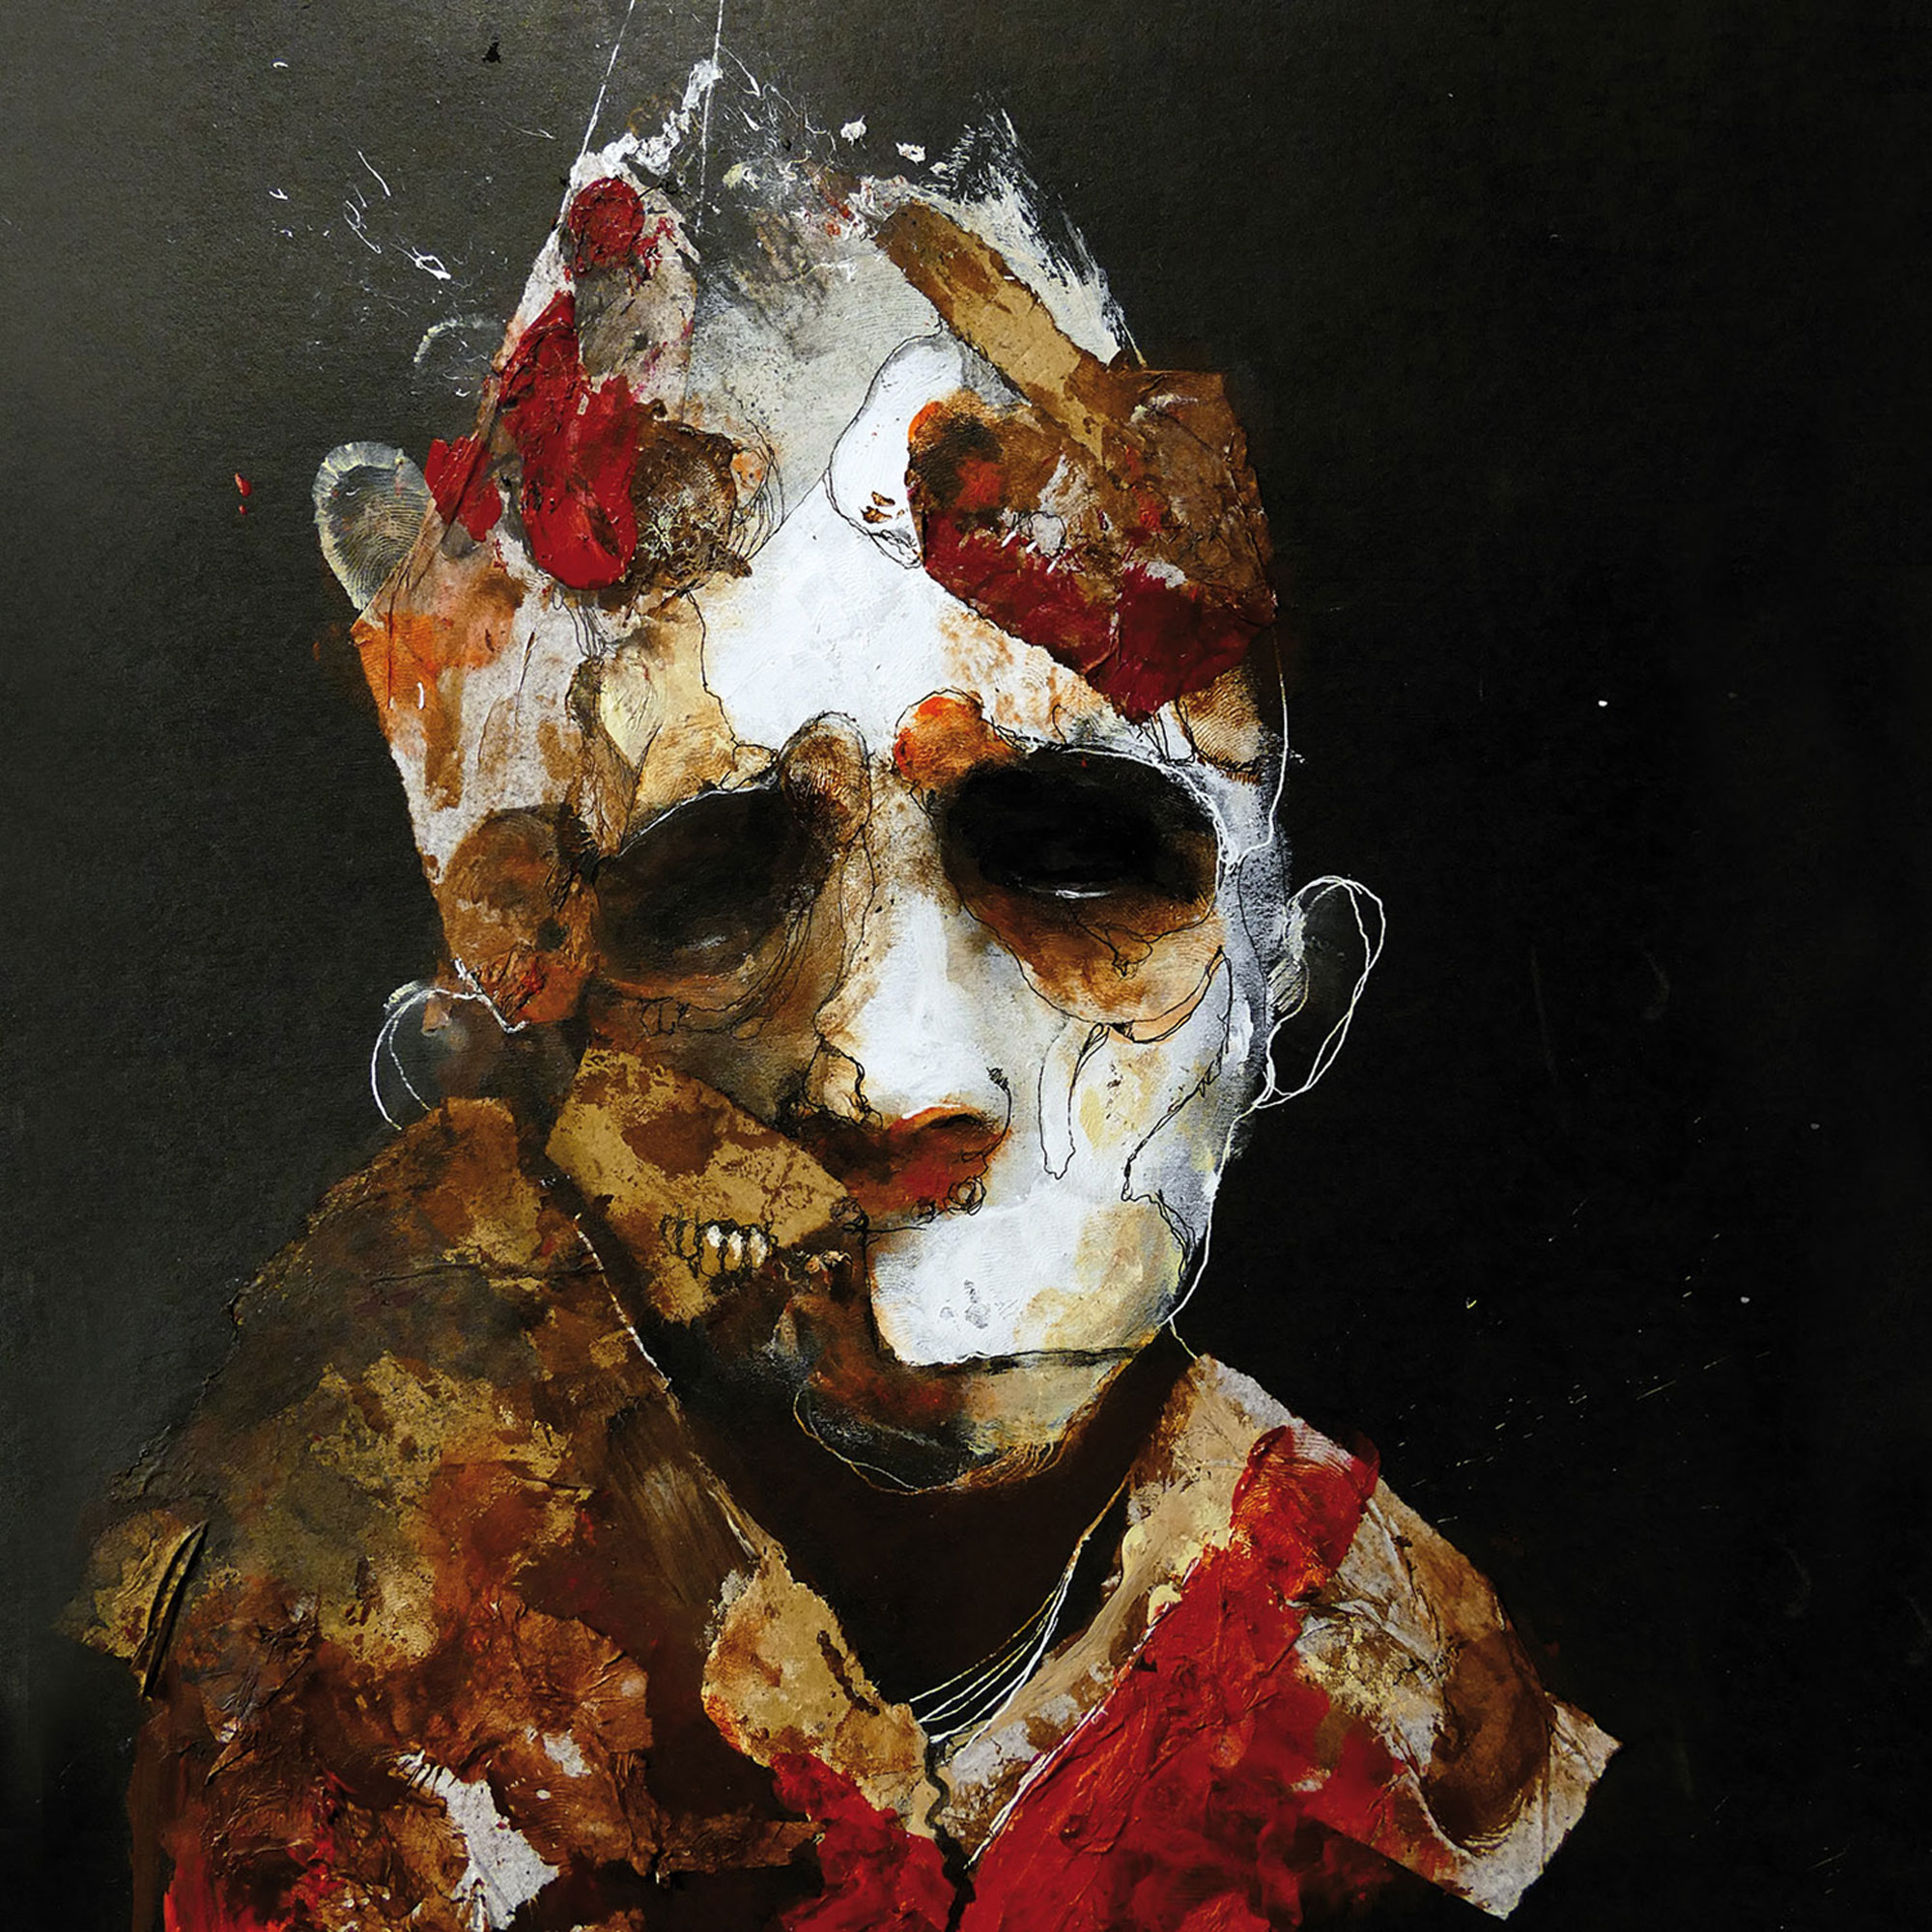 Eric Lacombe - decaying face cover